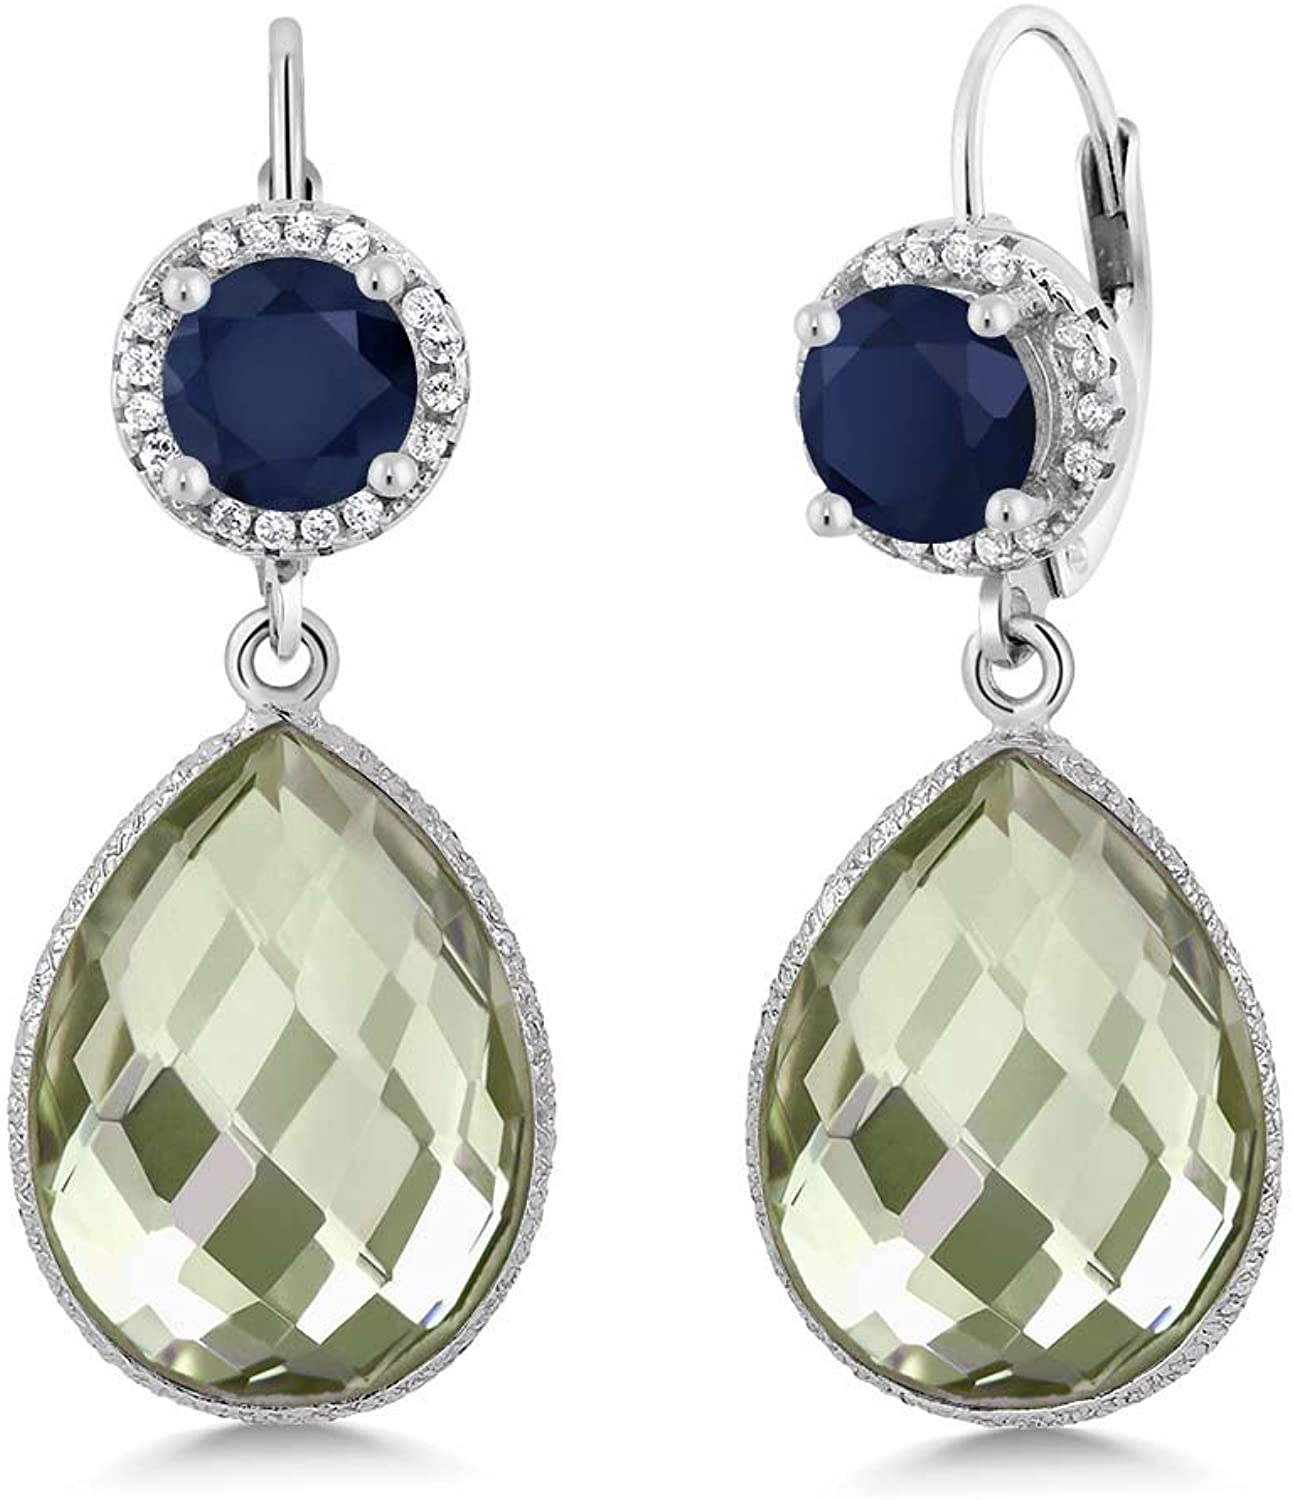 2.00 Ct Round bluee Sapphire Pear Amethyst 925 Sterling Silver Earrings